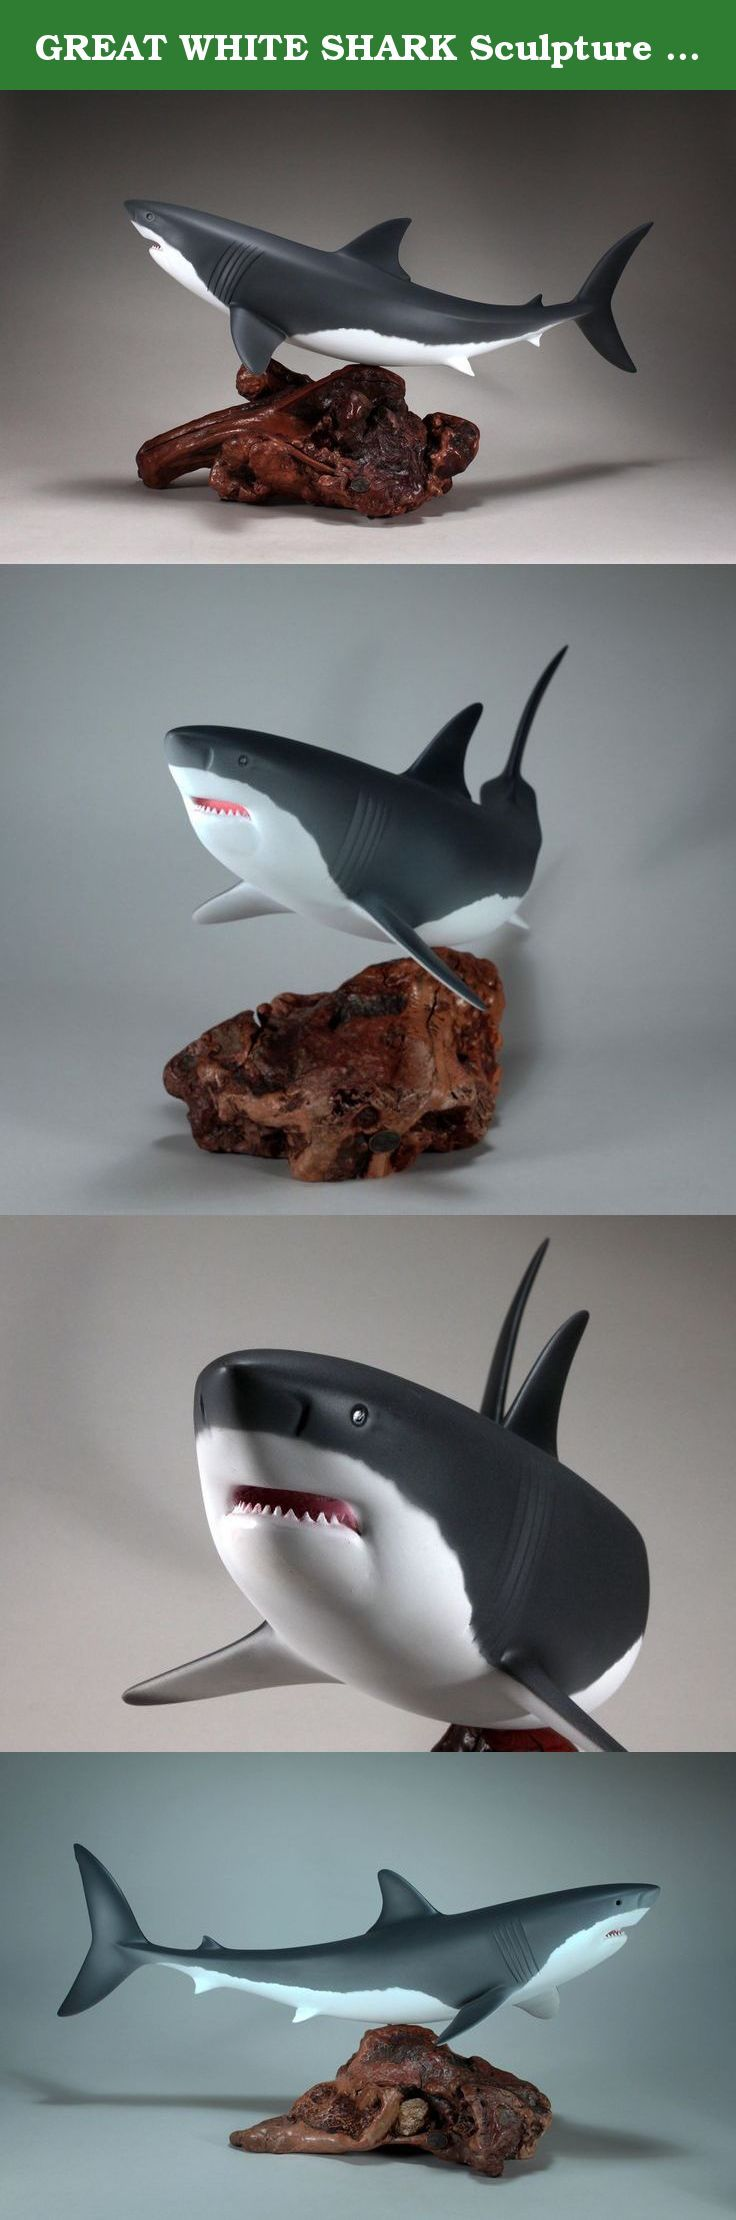 Great white shark sculpture direct from john perry statue